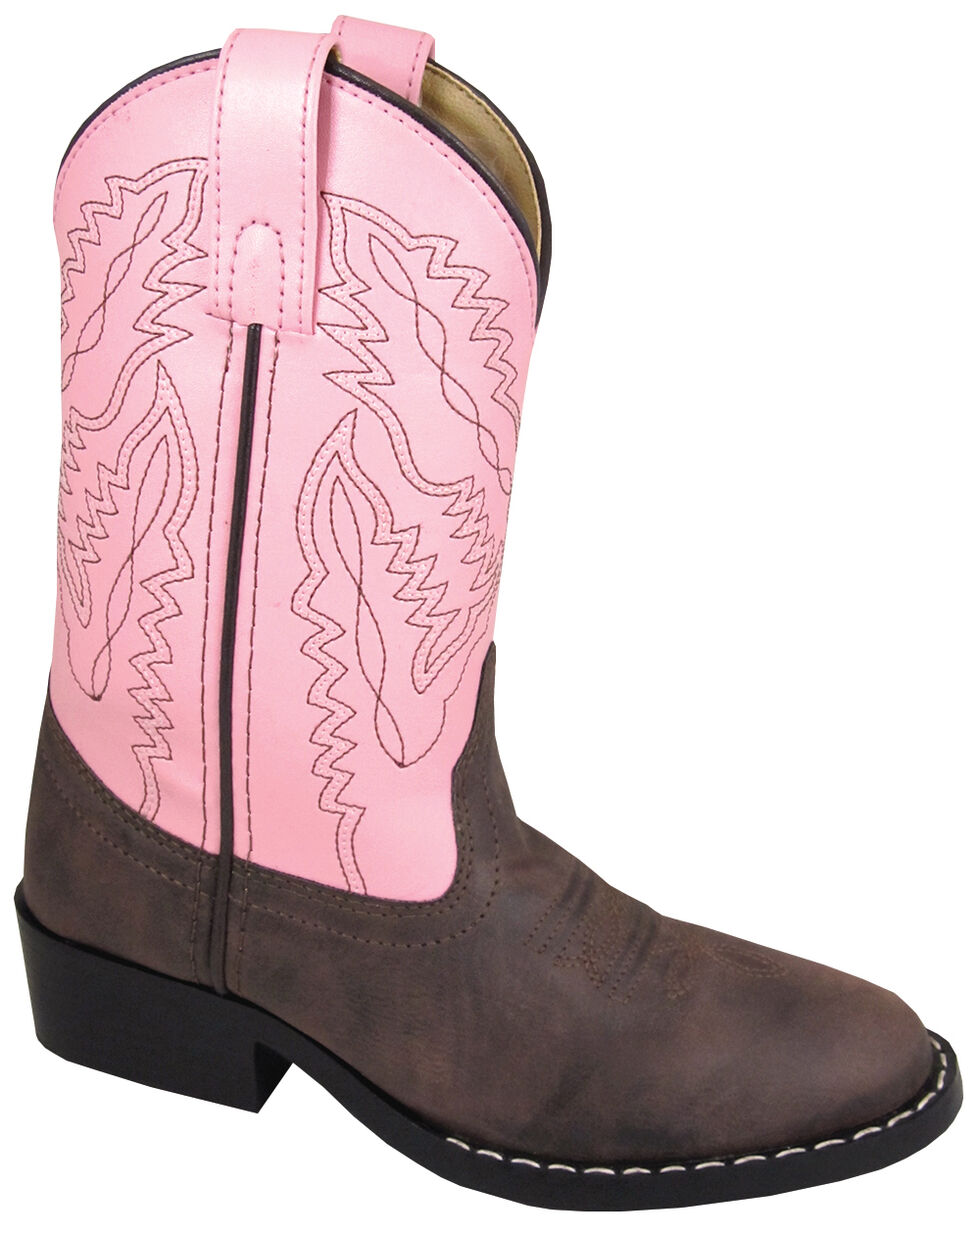 Smoky Mountain Girls' Monterey Western Boots - Round Toe, Brown, hi-res